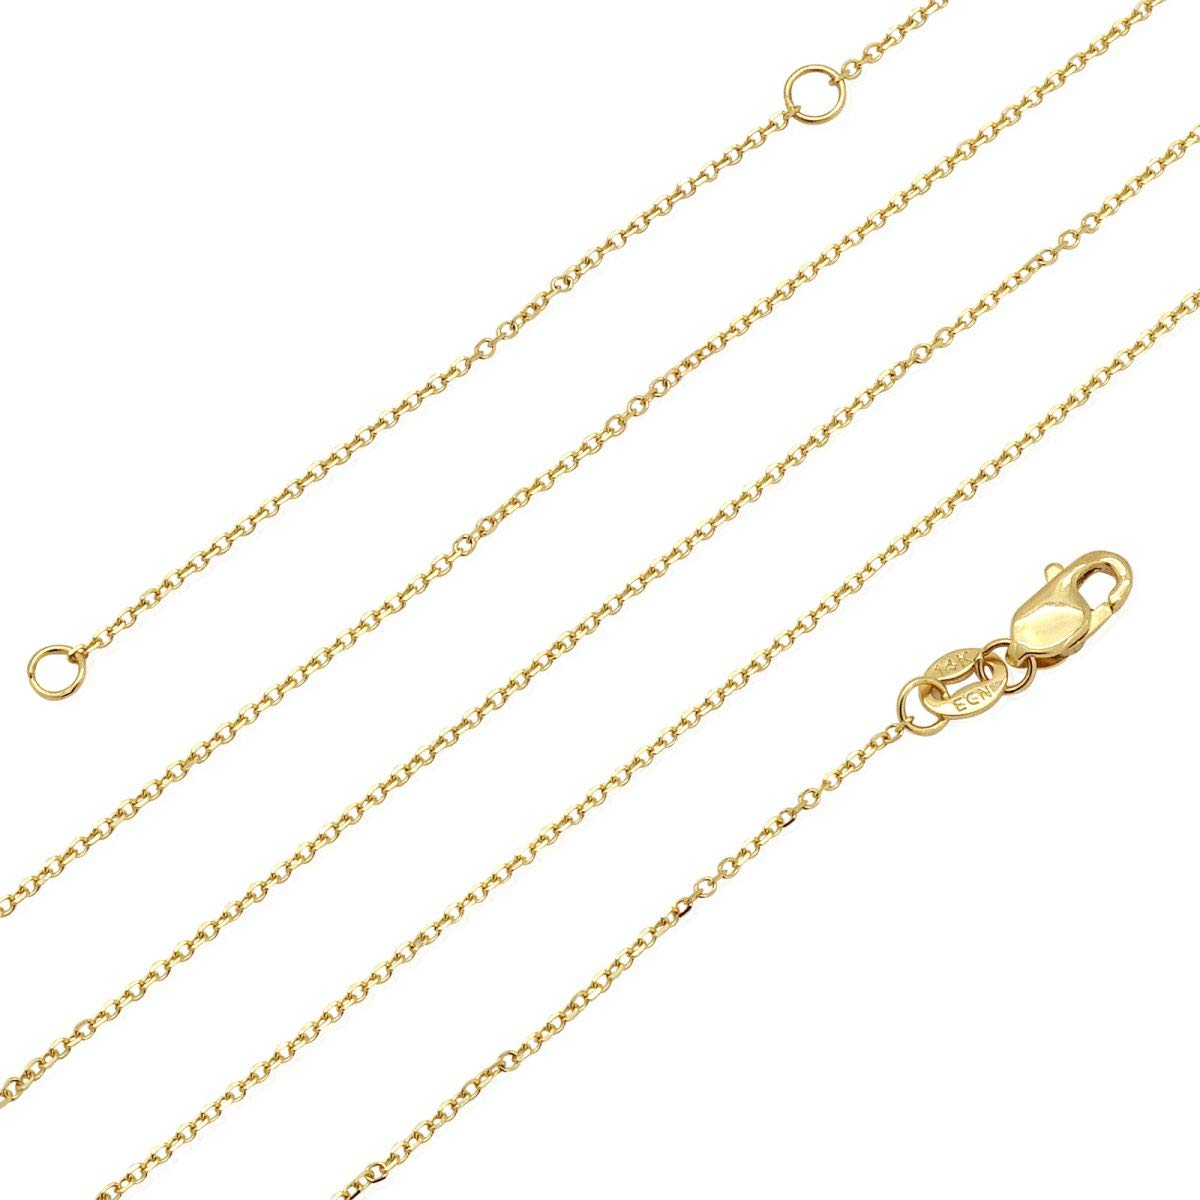 14k Tri-Color Gold Boy Kids Pendant Cable Chain Necklace 16 18